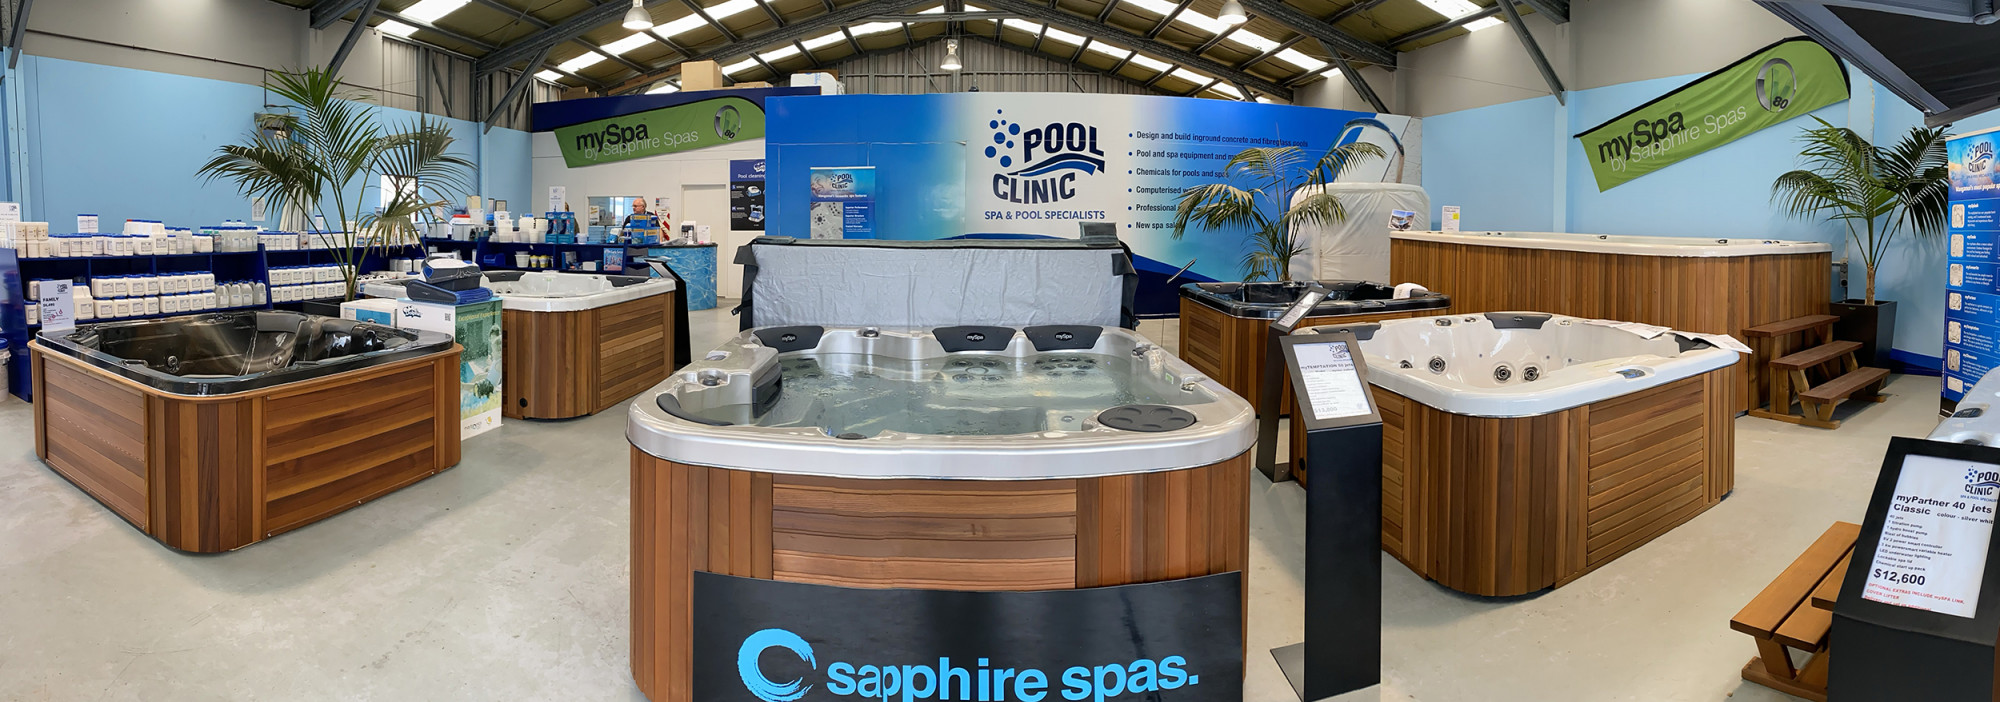 Swim Spa Pools Wanganui